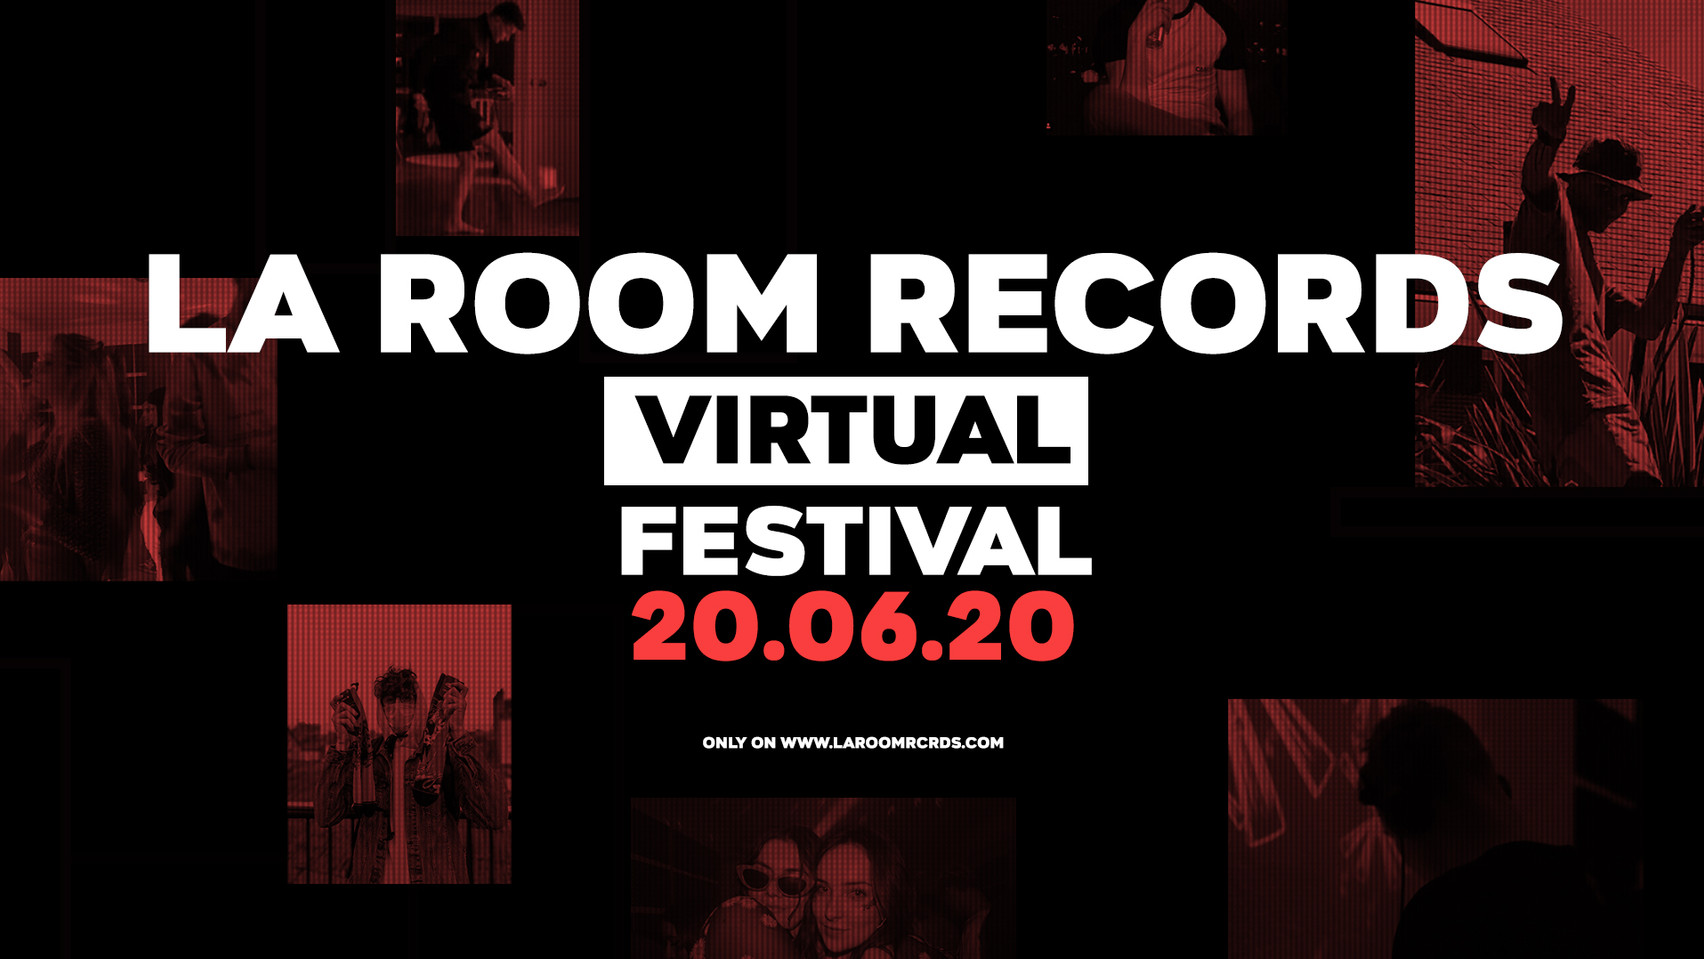 LA ROOM RECORDS - VIRTUAL FESTIVAL